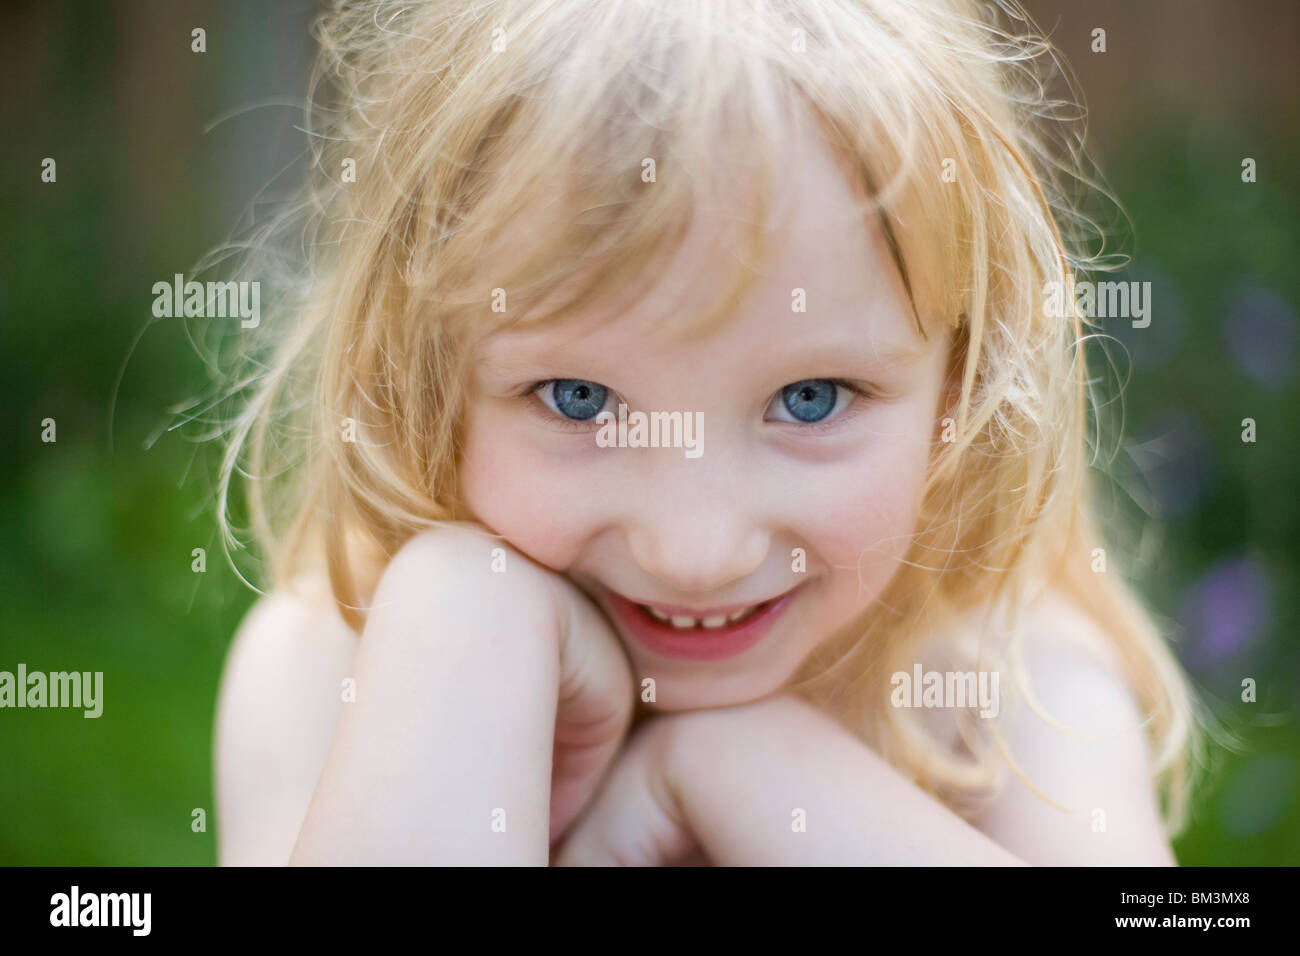 portrait of happy 4 year old girl Stock Photo